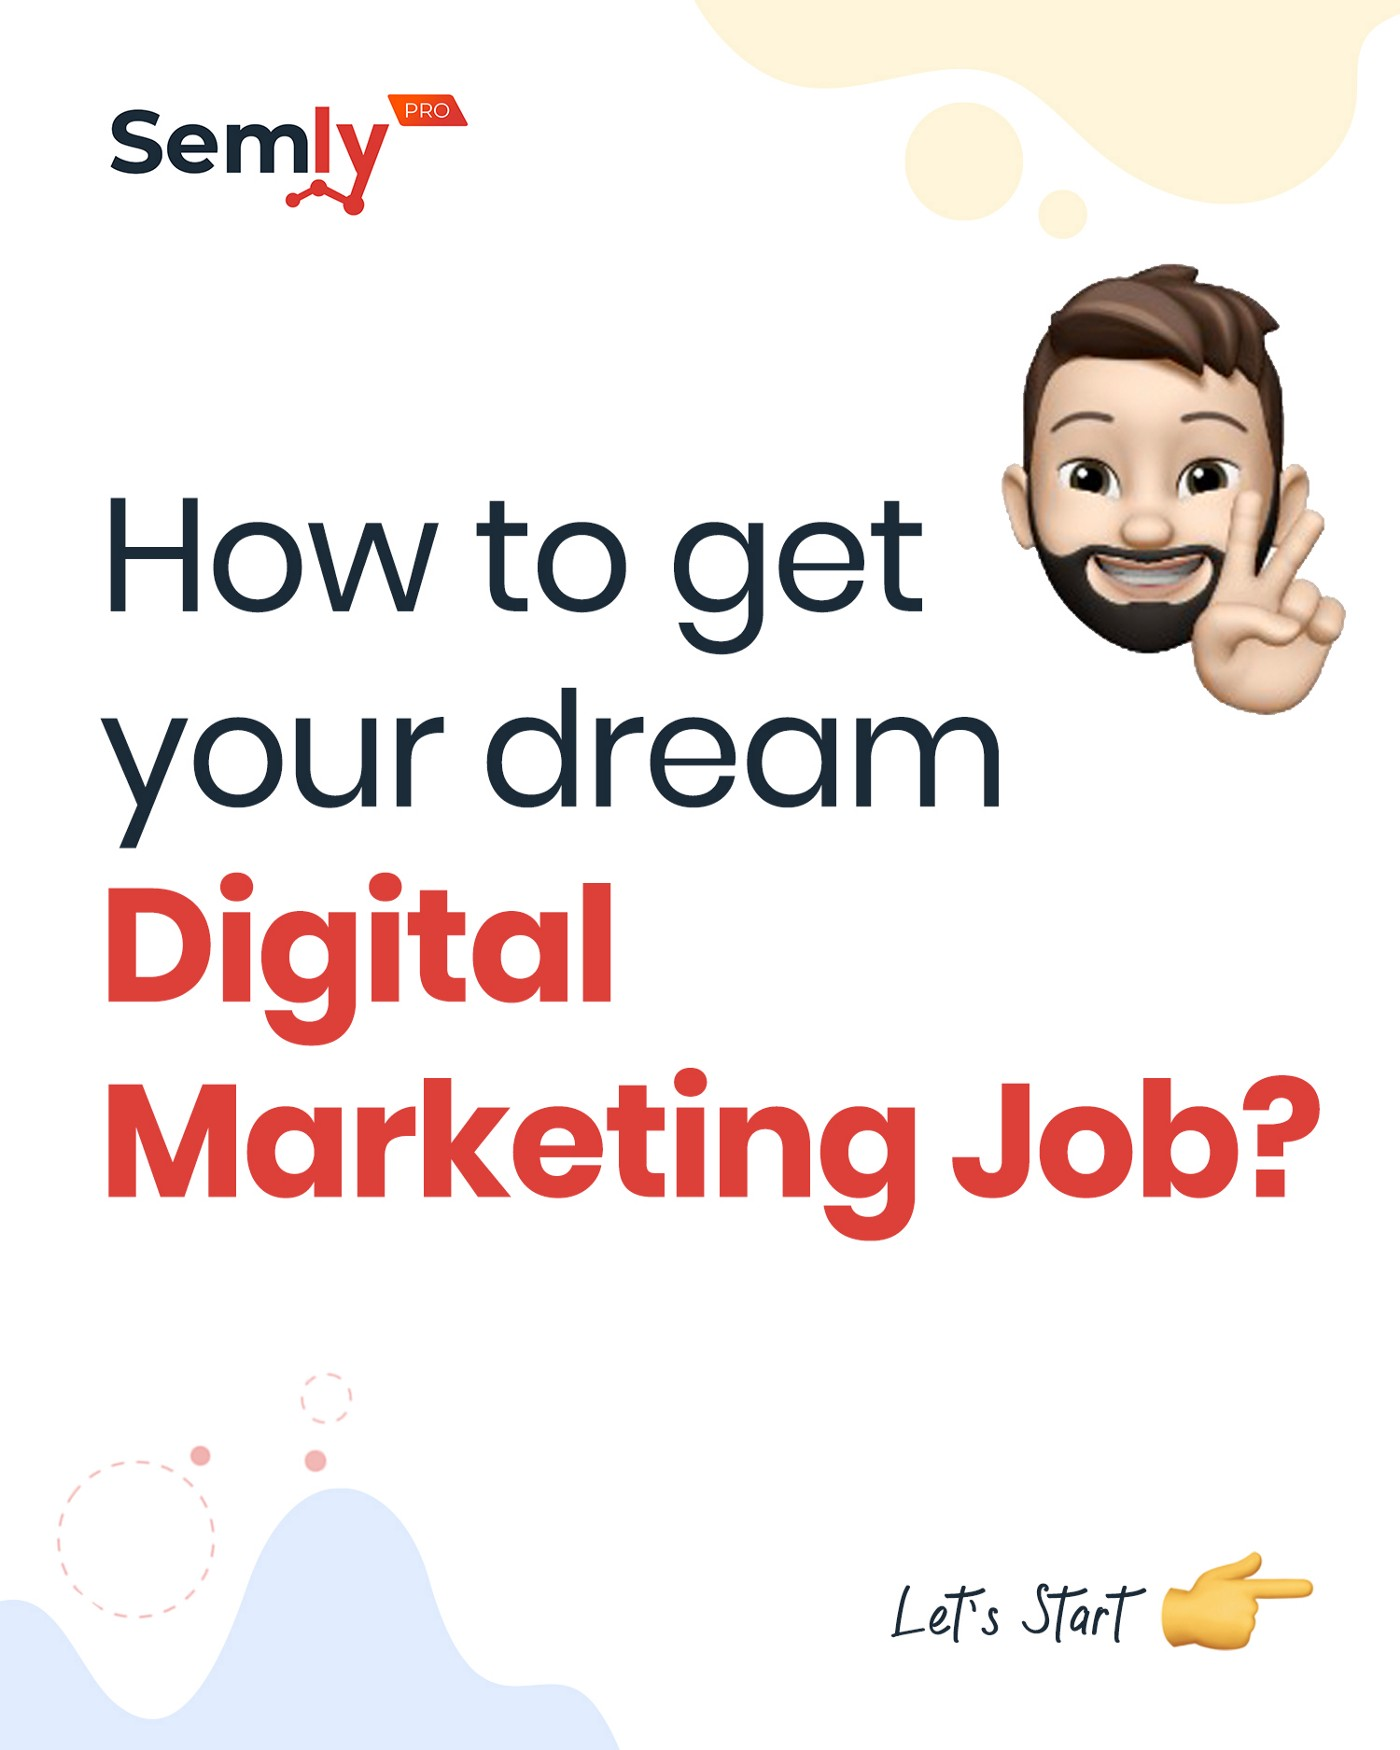 How to get your dream Digital Marketing job by Semly Pro